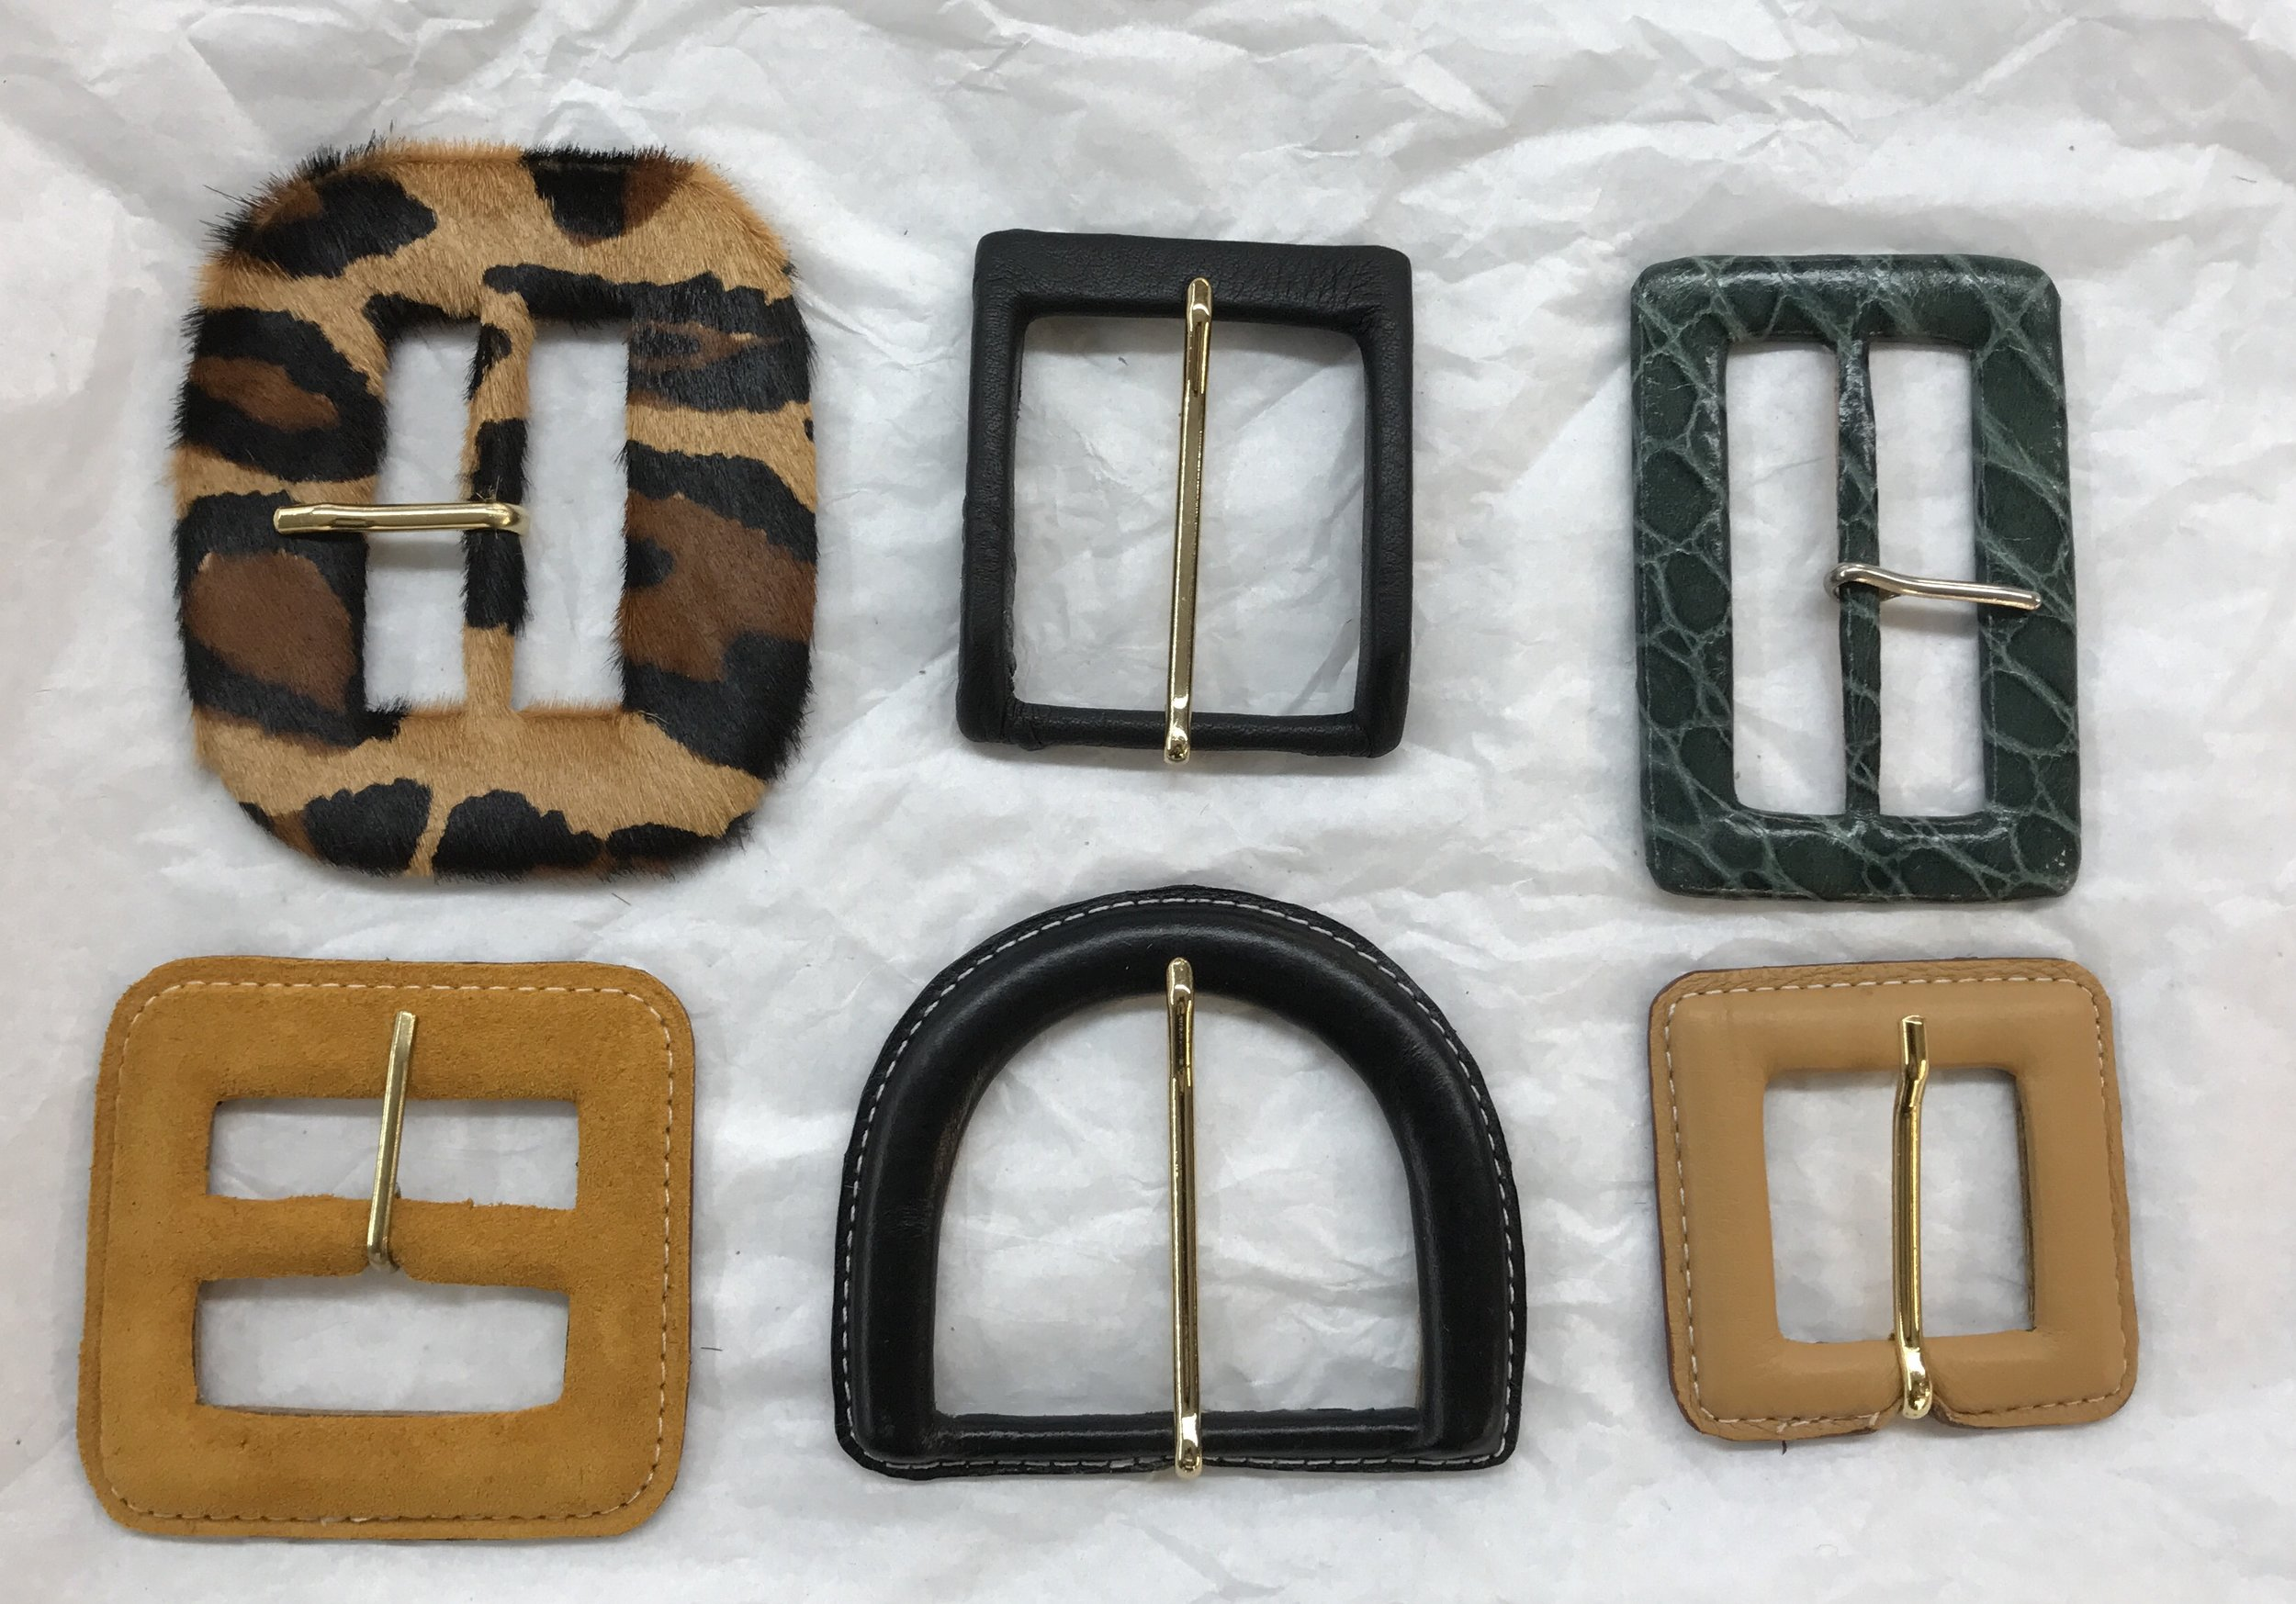 ANY BUCKLE SHAPE - Leather or Fabric can be used to cover buckle